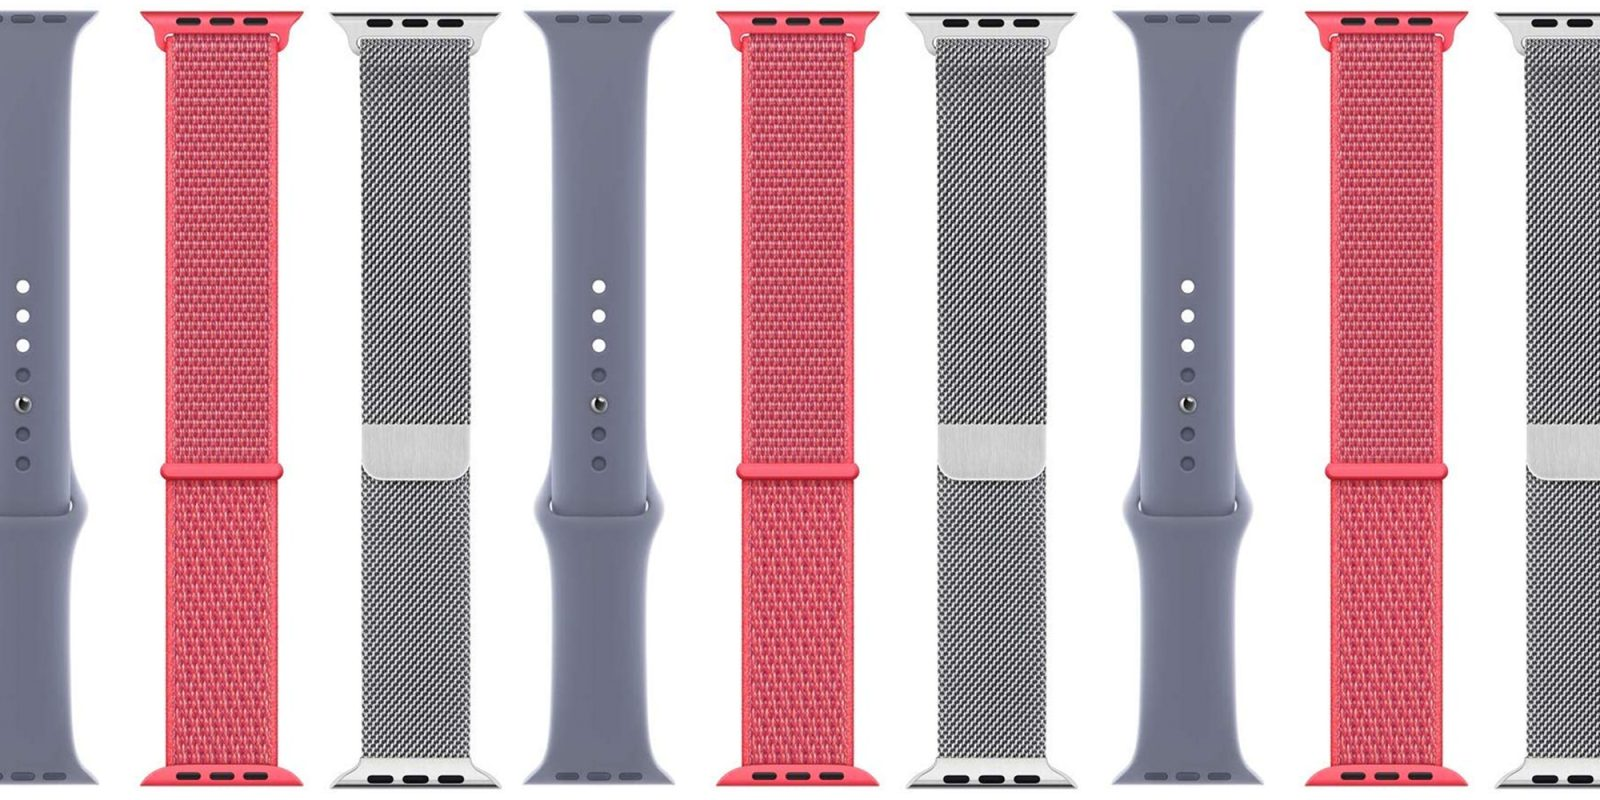 Official Apple Watch bands on sale from $22, plus iPhone SE is $85 and iPad Pro $199 off